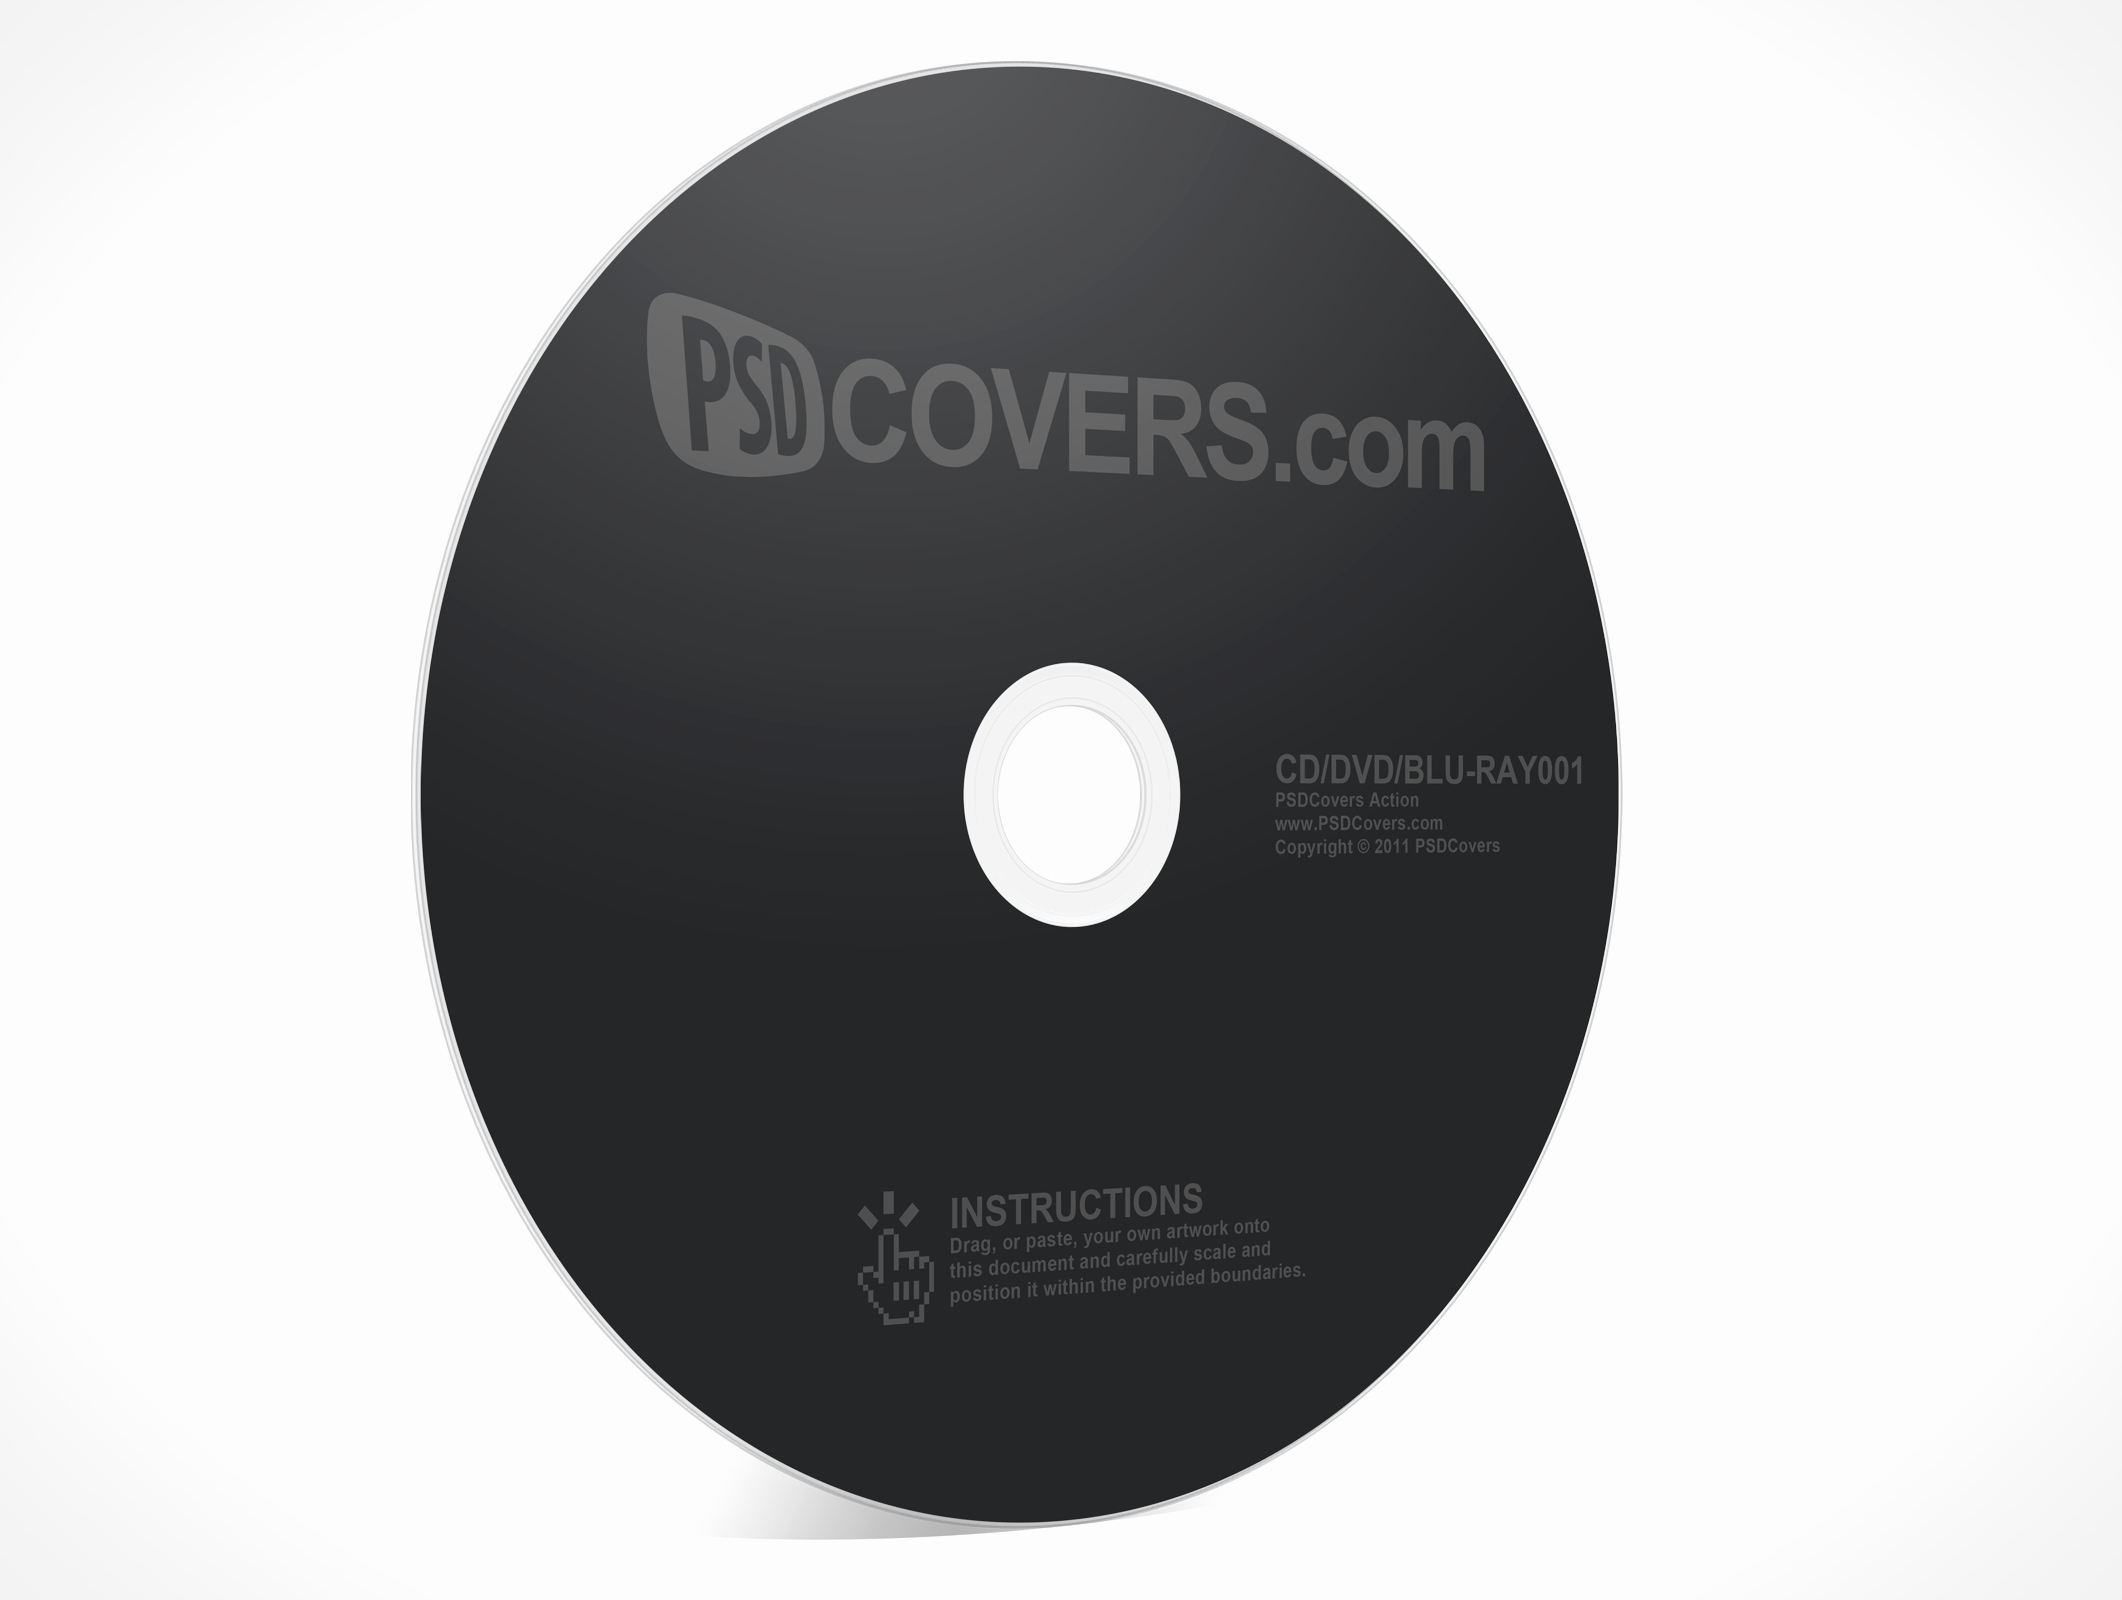 Compact Disc Template Unique Pact Disc Archives • Psdcovers